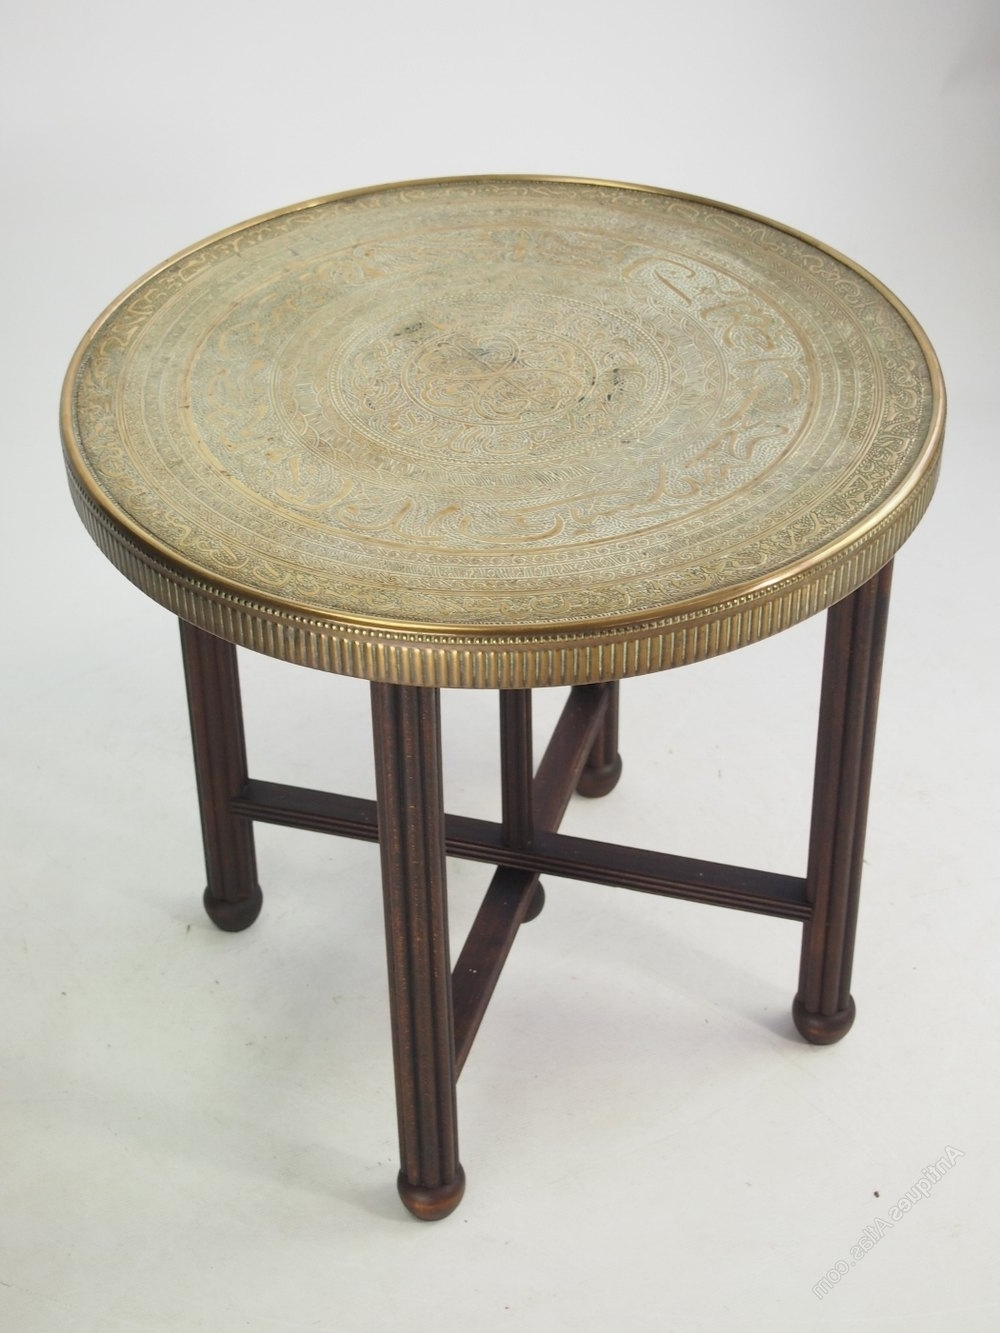 Most Popular Antique Brass Coffee Tables Regarding Berber Benares Brass Tray Top Coffee Table – Antiques Atlas (View 14 of 20)